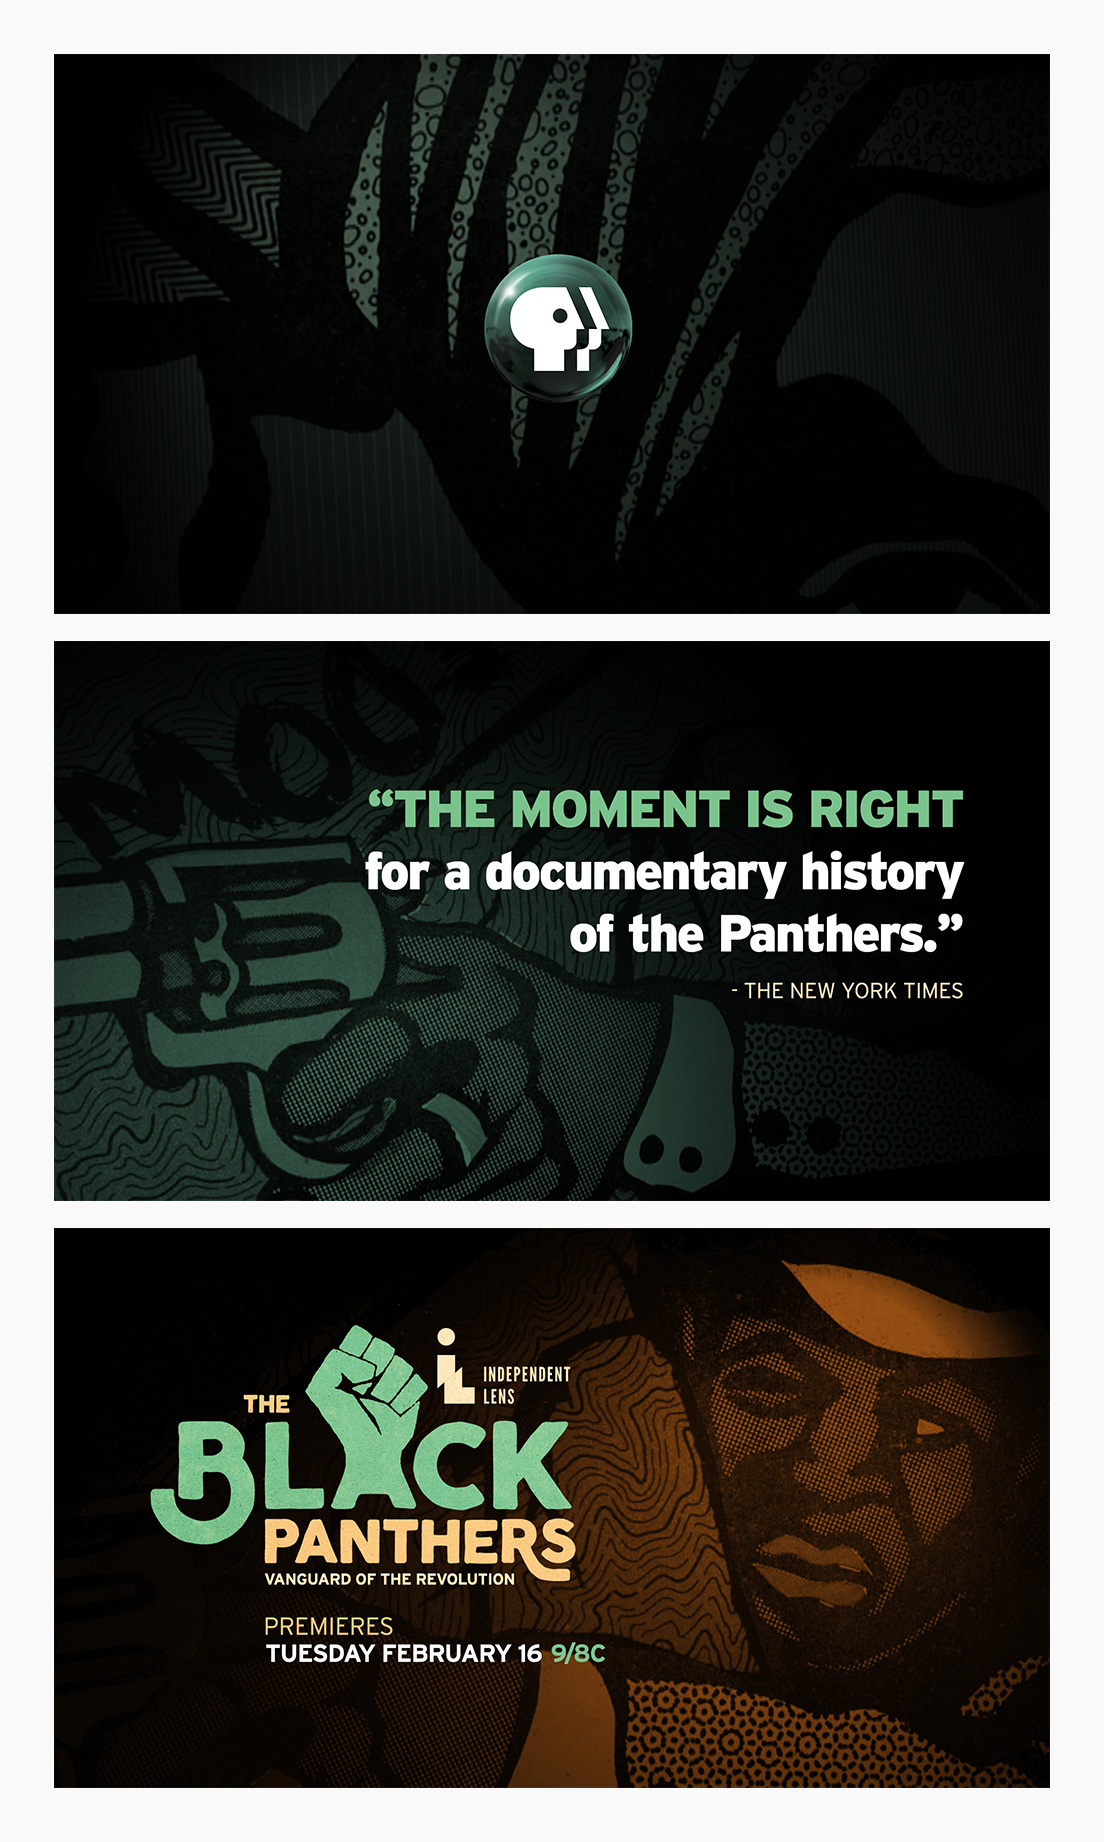 artdirection_pbs_blackpanthers_image03